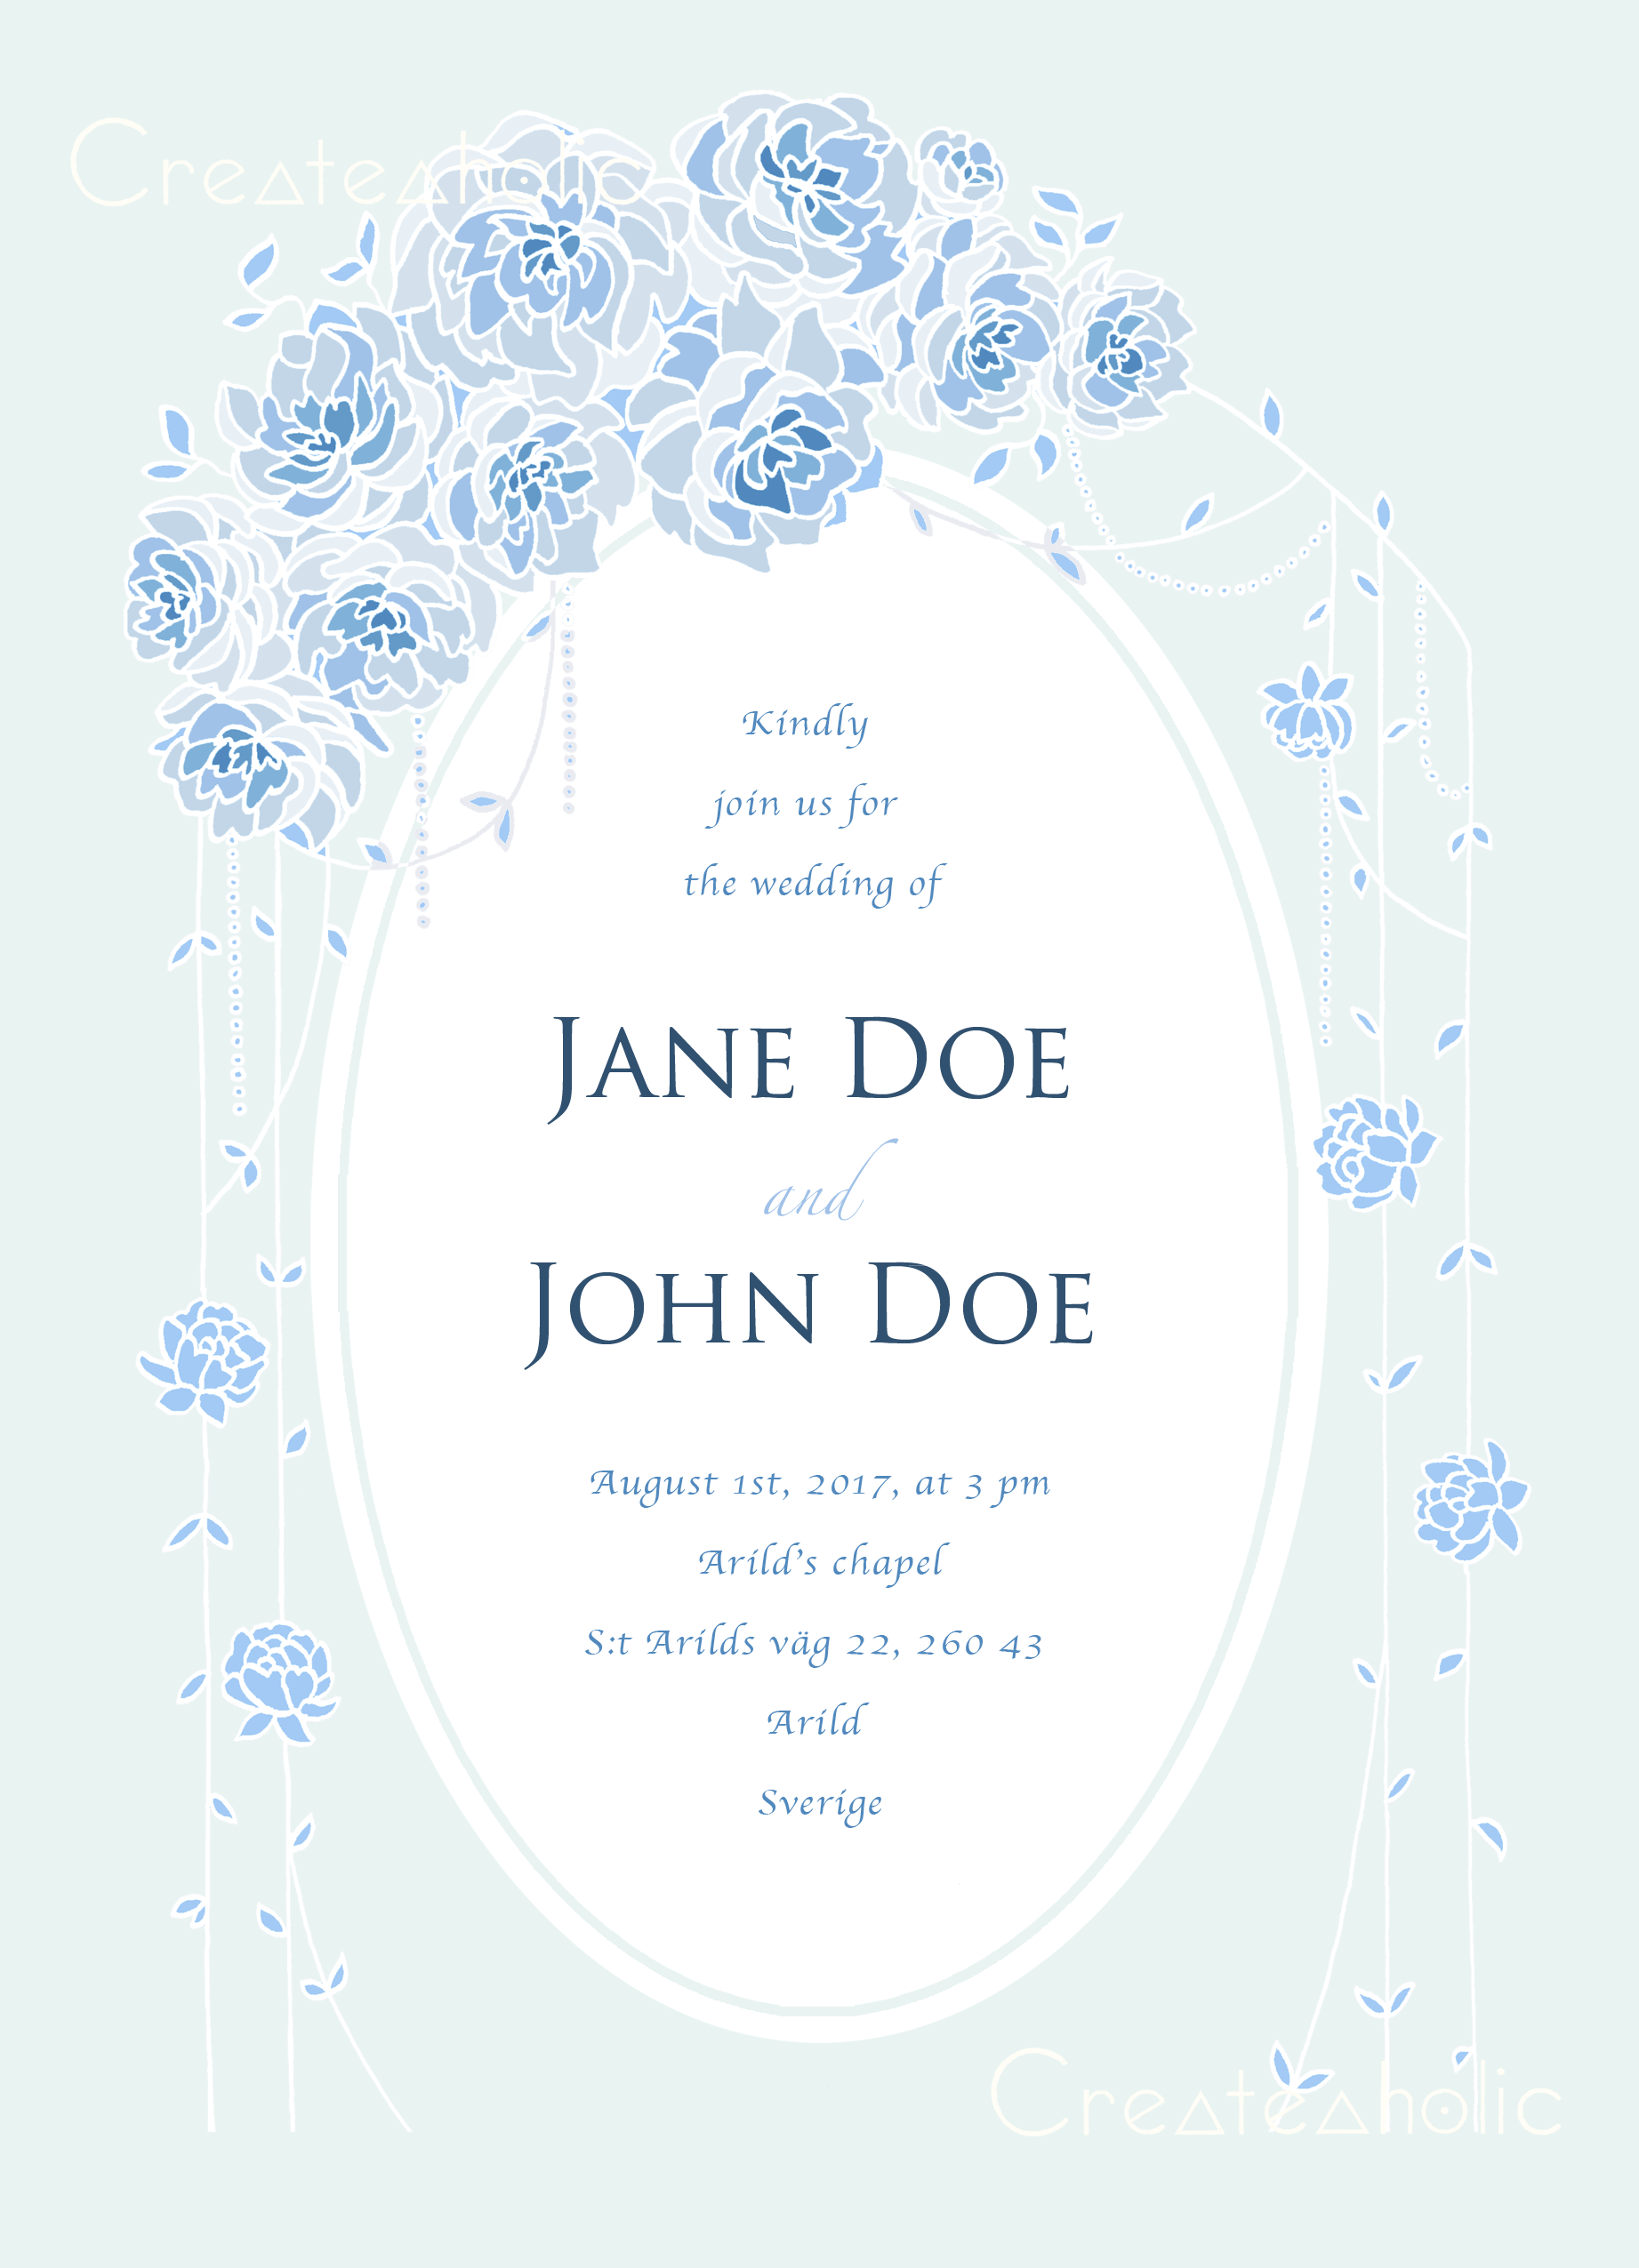 Printable Wedding invitations This product includes a custom made ...